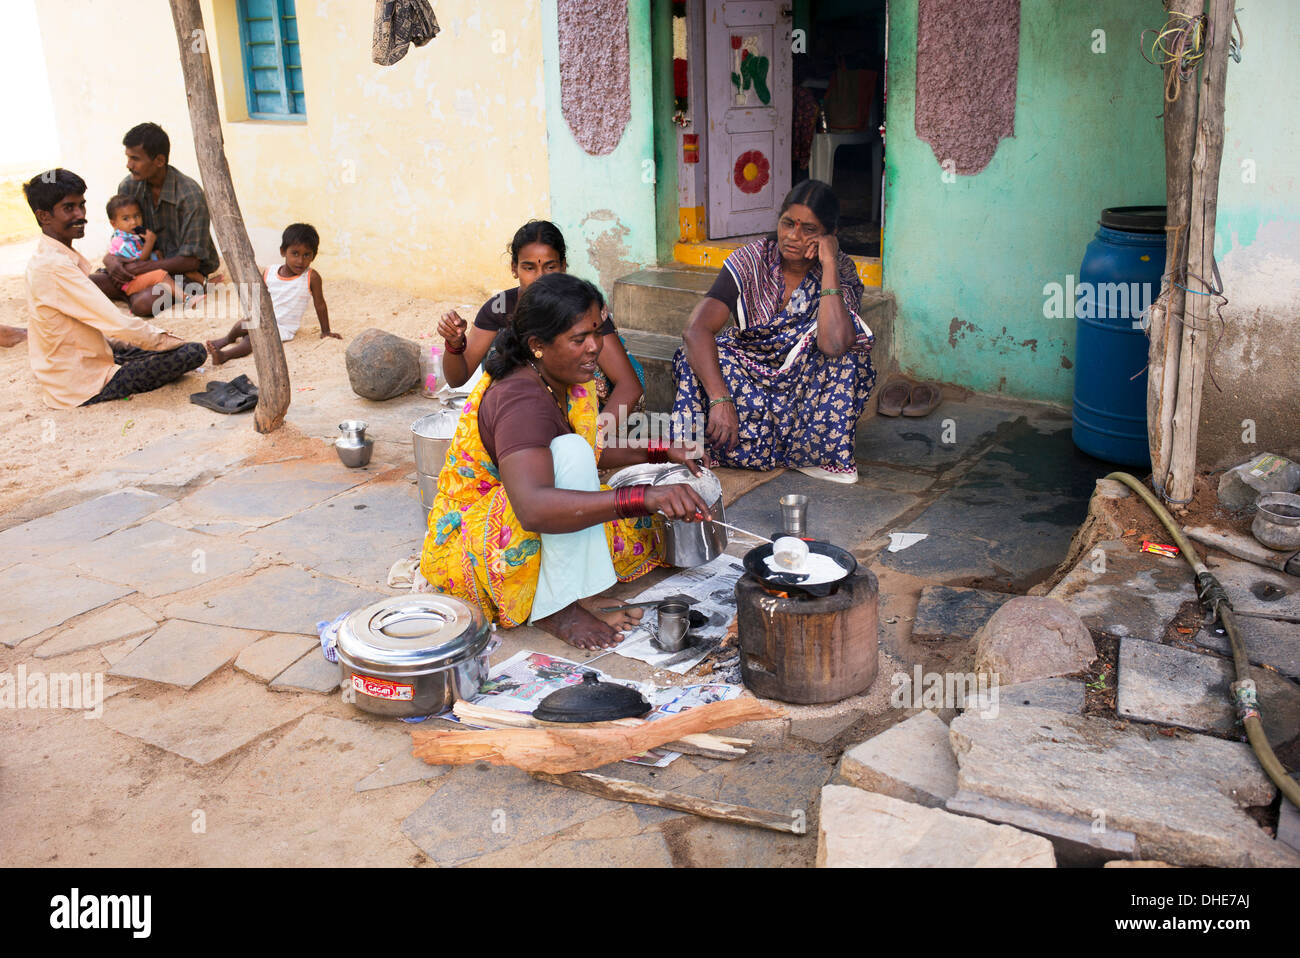 https://c8.alamy.com/comp/DHE7AJ/indian-woman-cooking-dosa-for-people-outside-a-rural-village-house-DHE7AJ.jpg Indian Woman Cooking